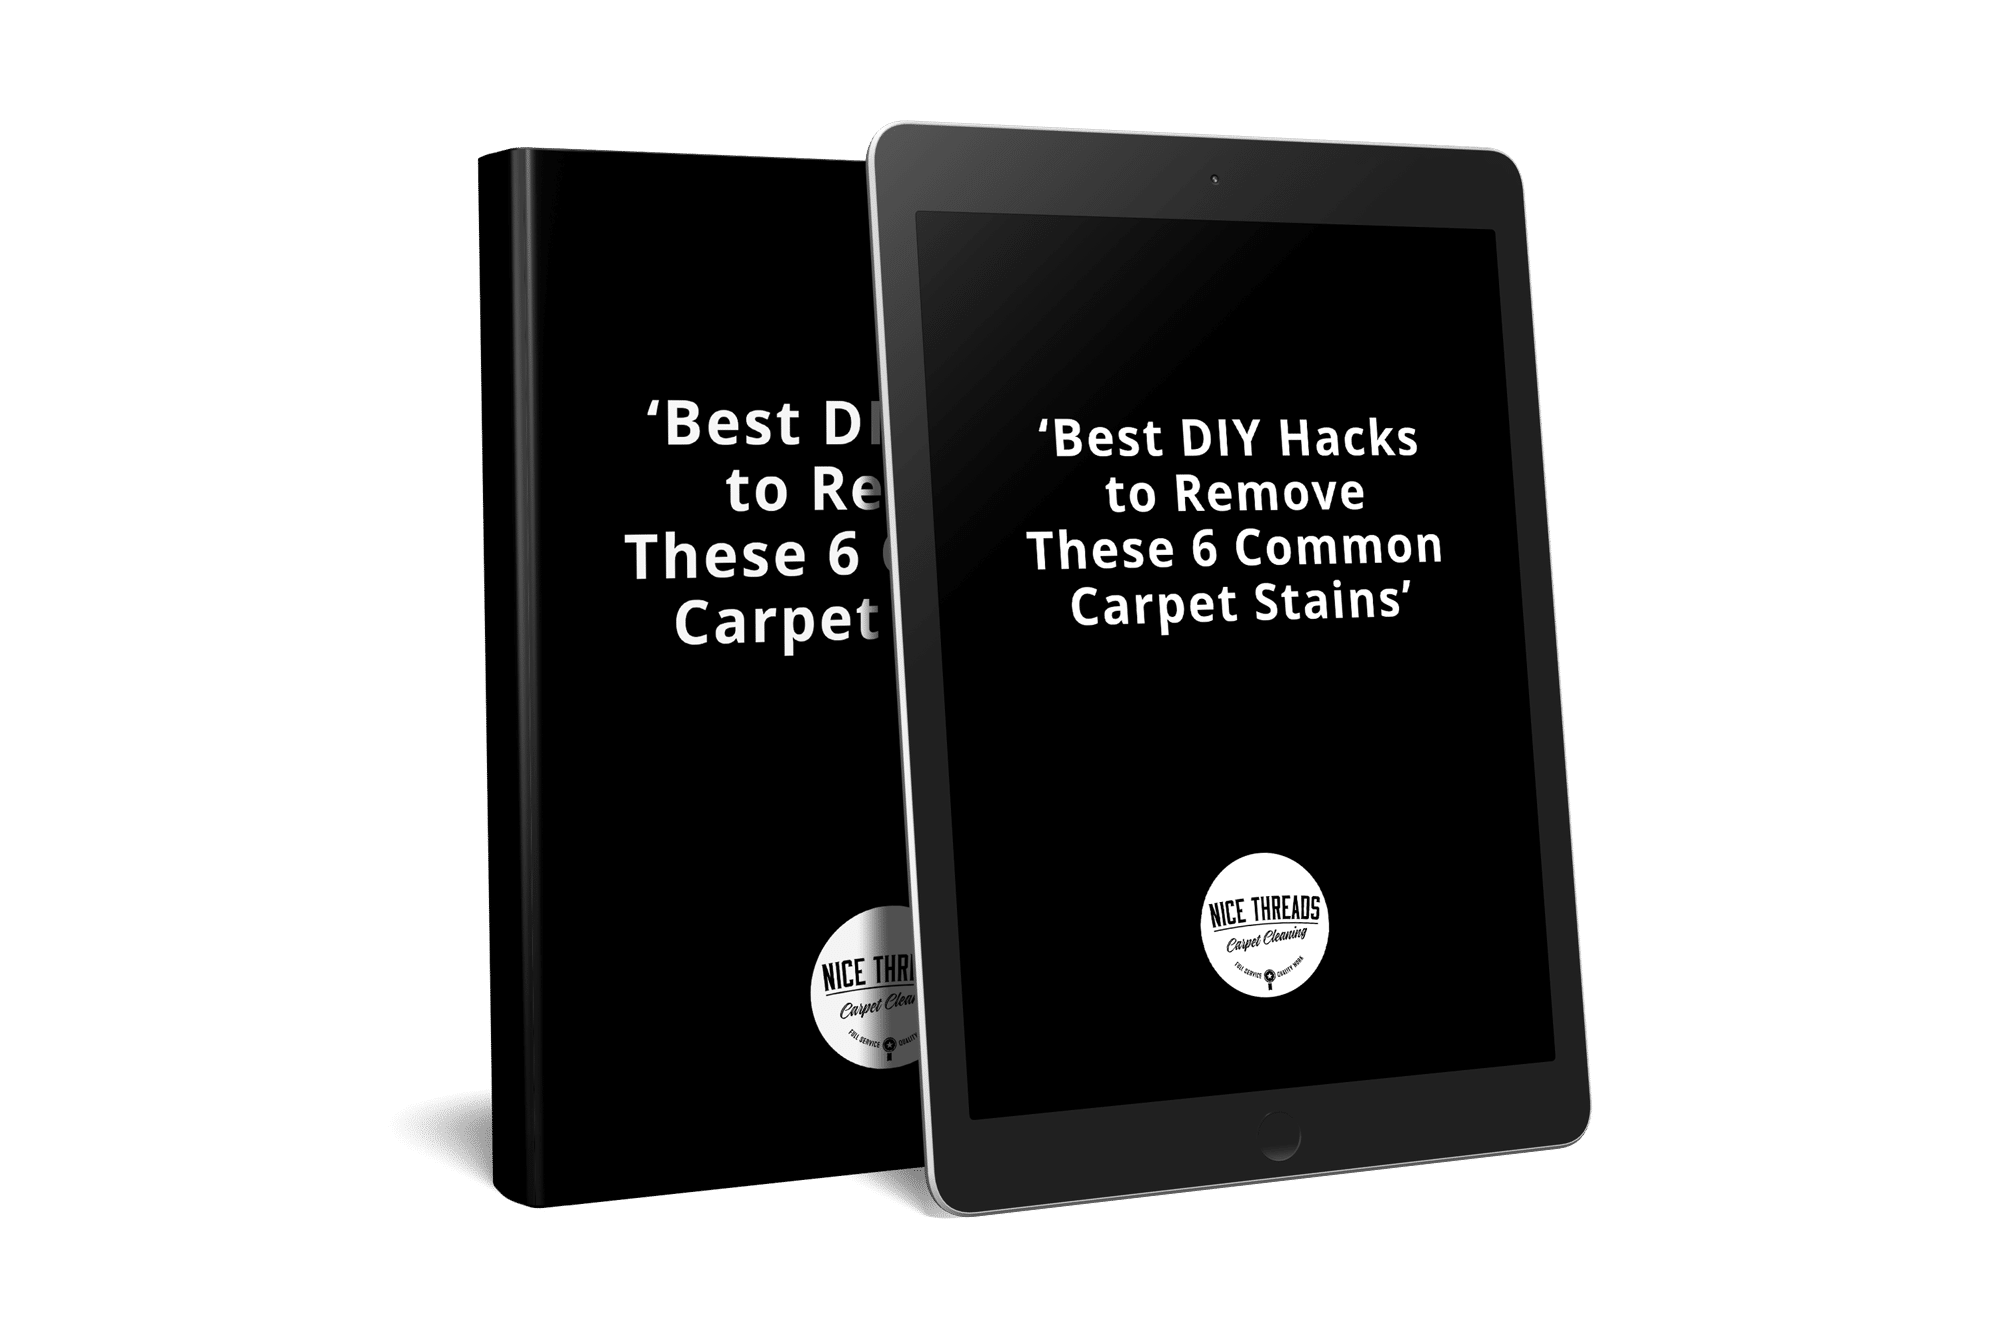 6 DIY hacks to remove common carpet stains